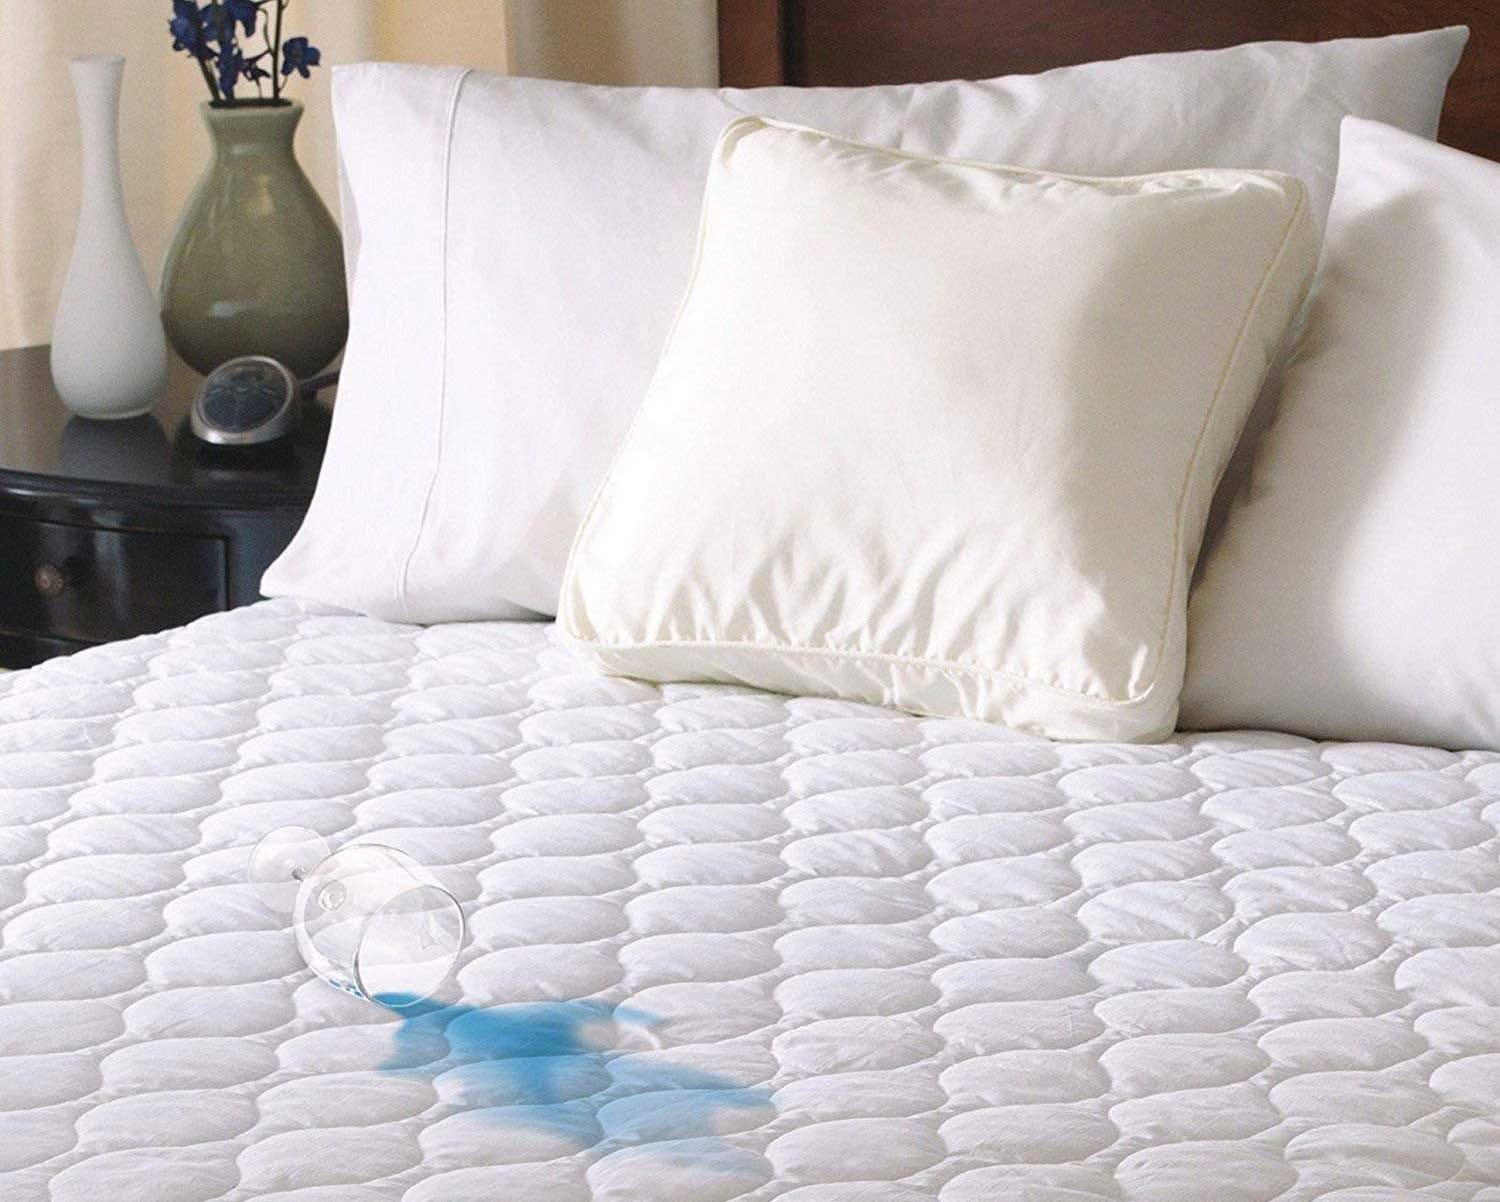 A Sunbeam water-resistant mattress pad on a bed with a spilled glass of water beading up on it.